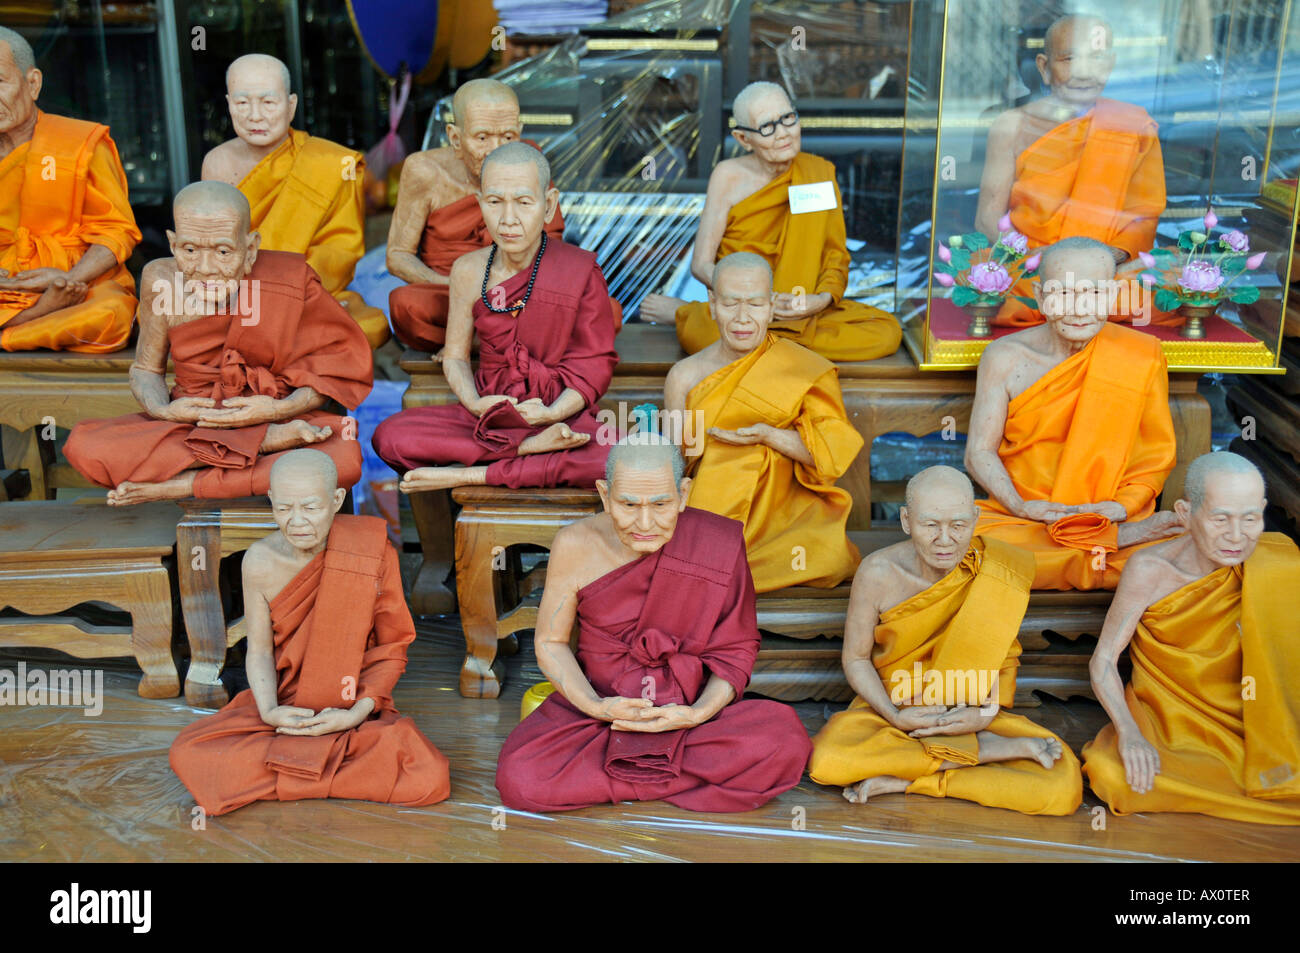 Monk figurines and other devotional objects for sale along Bamrung Muang Road, Bangkok, Thailand, Southeast Asia - Stock Image